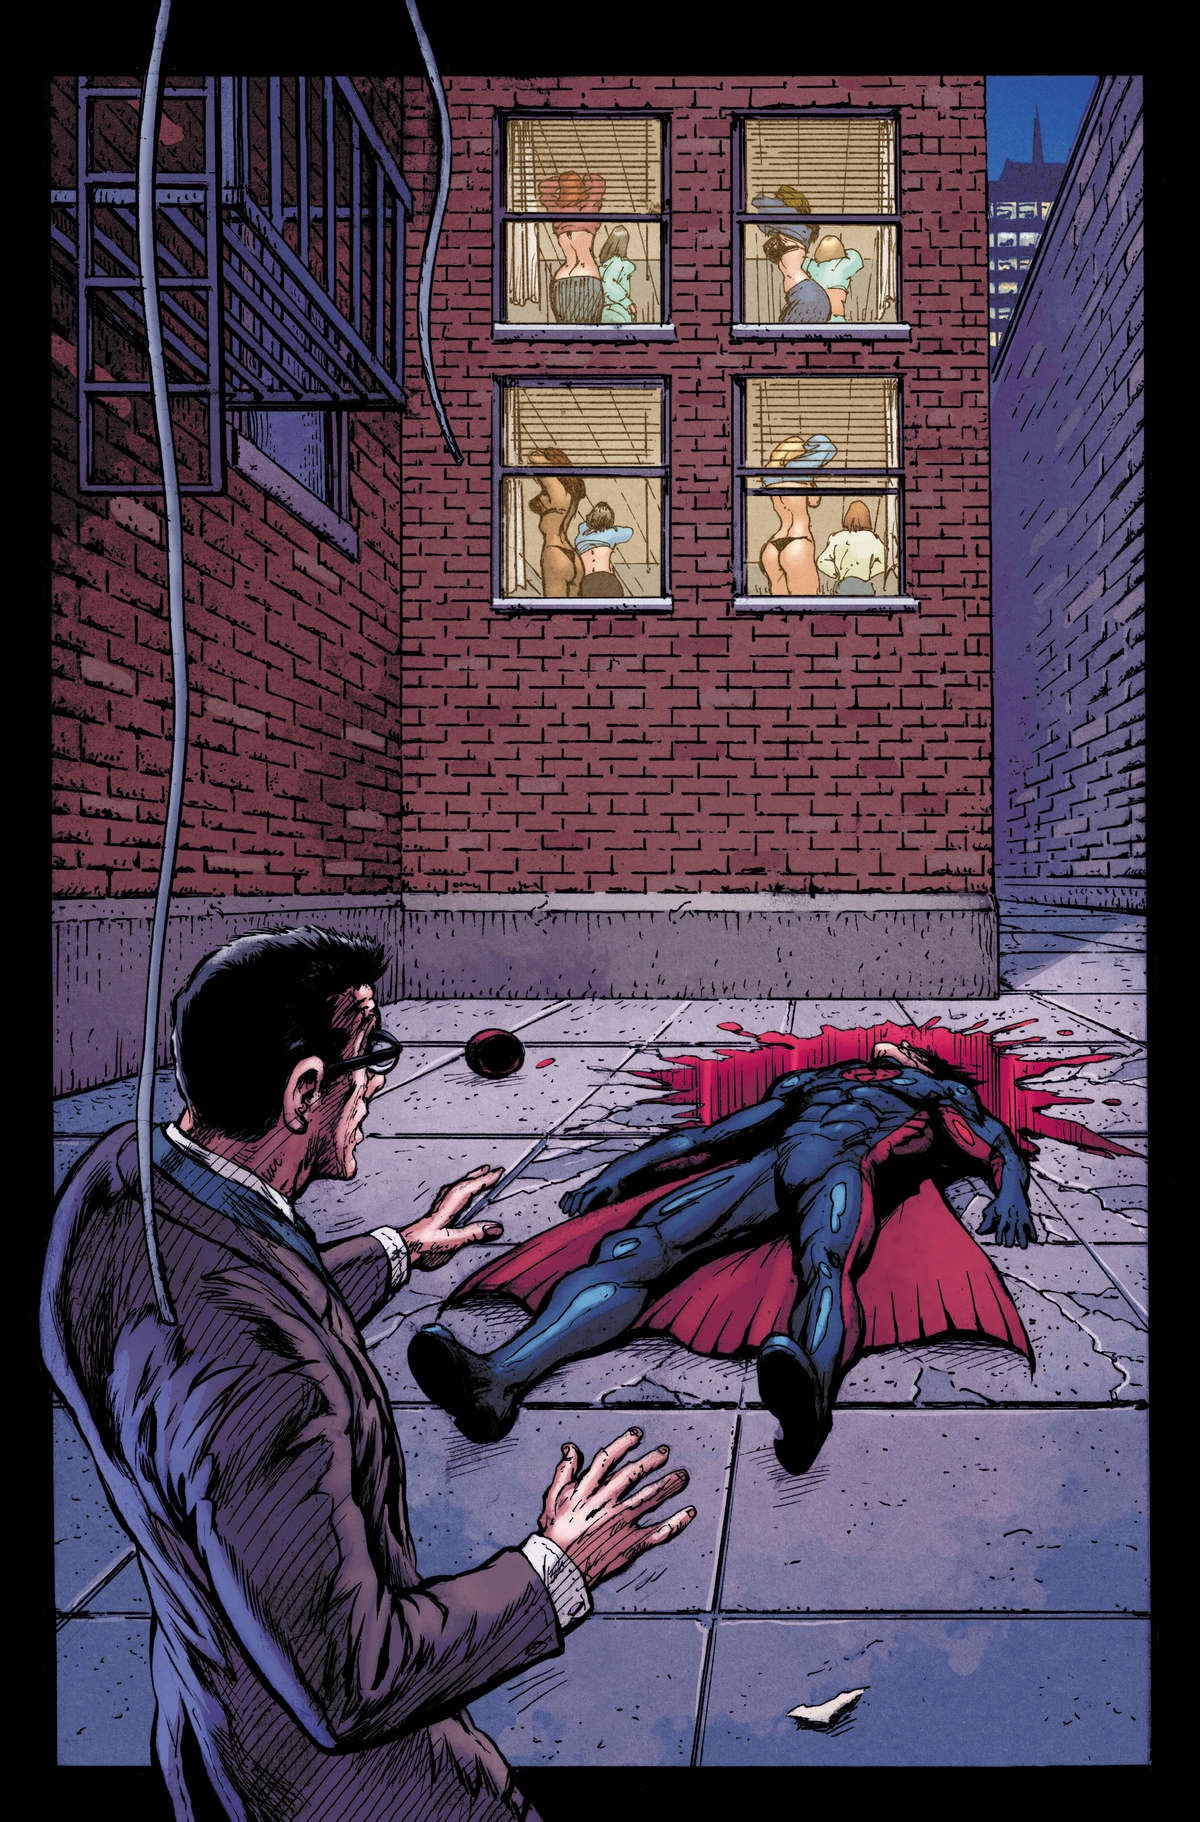 , AWA Studios/Upshot Studios Announces New Series: KNIGHTED by Gregg Hurwitz and Mark Texeira, The Indie Comix Dispatch